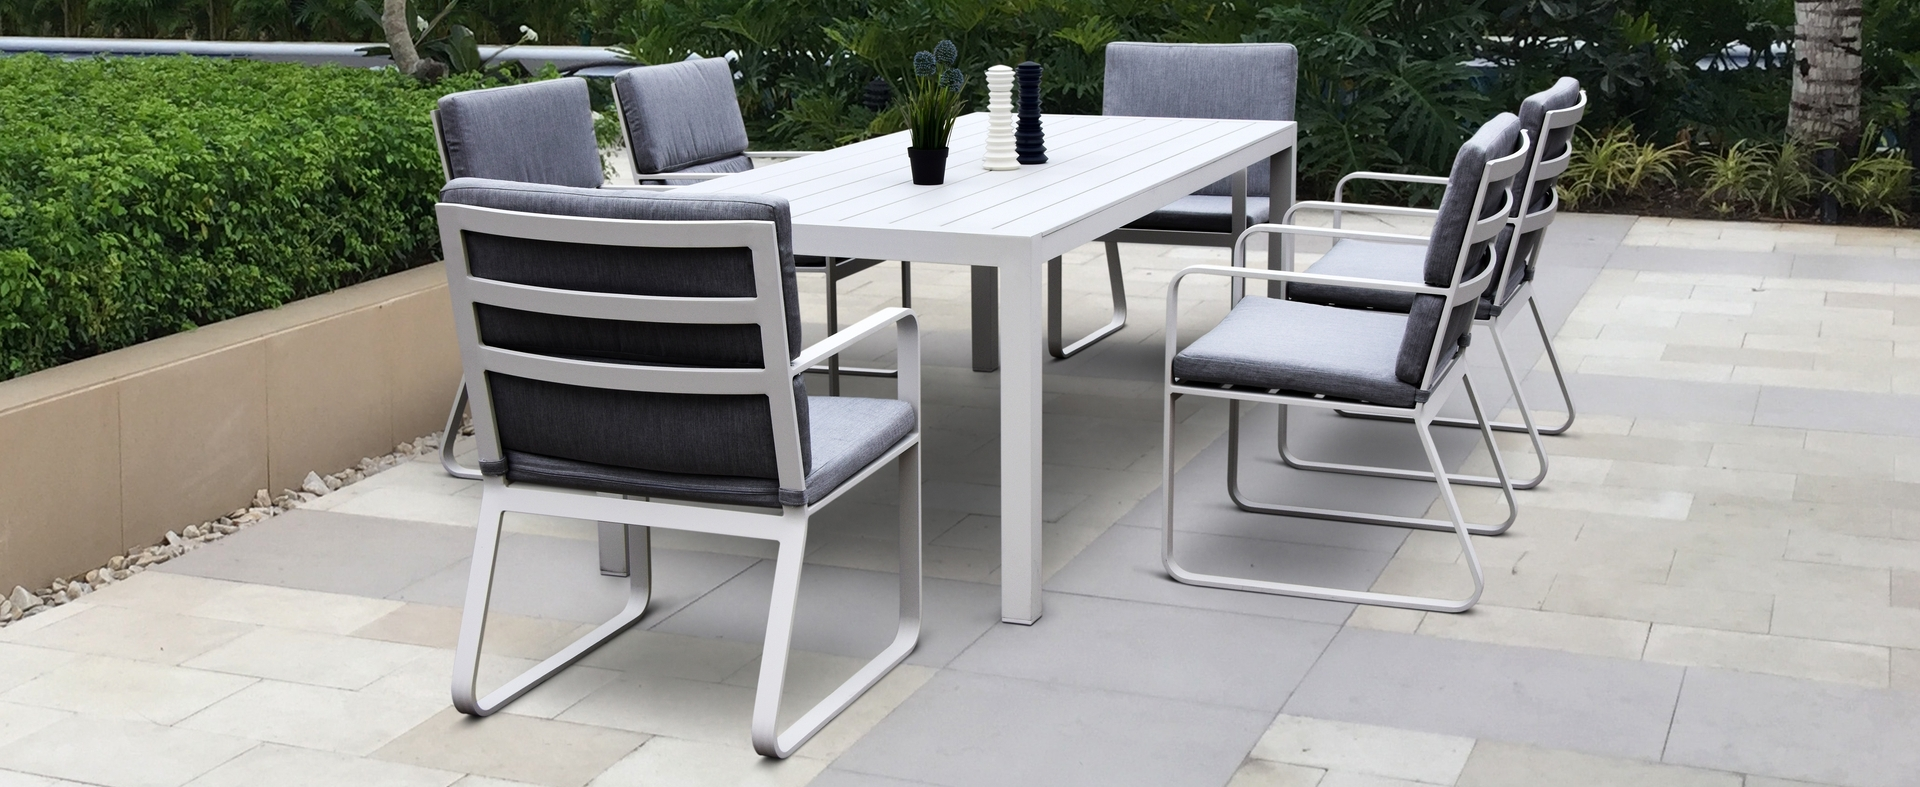 Current Cast Aluminum Patio Conversation Sets Intended For Nice Modern Aluminum Outdoor Furniture Ab Collections Cast Patio (View 19 of 20)